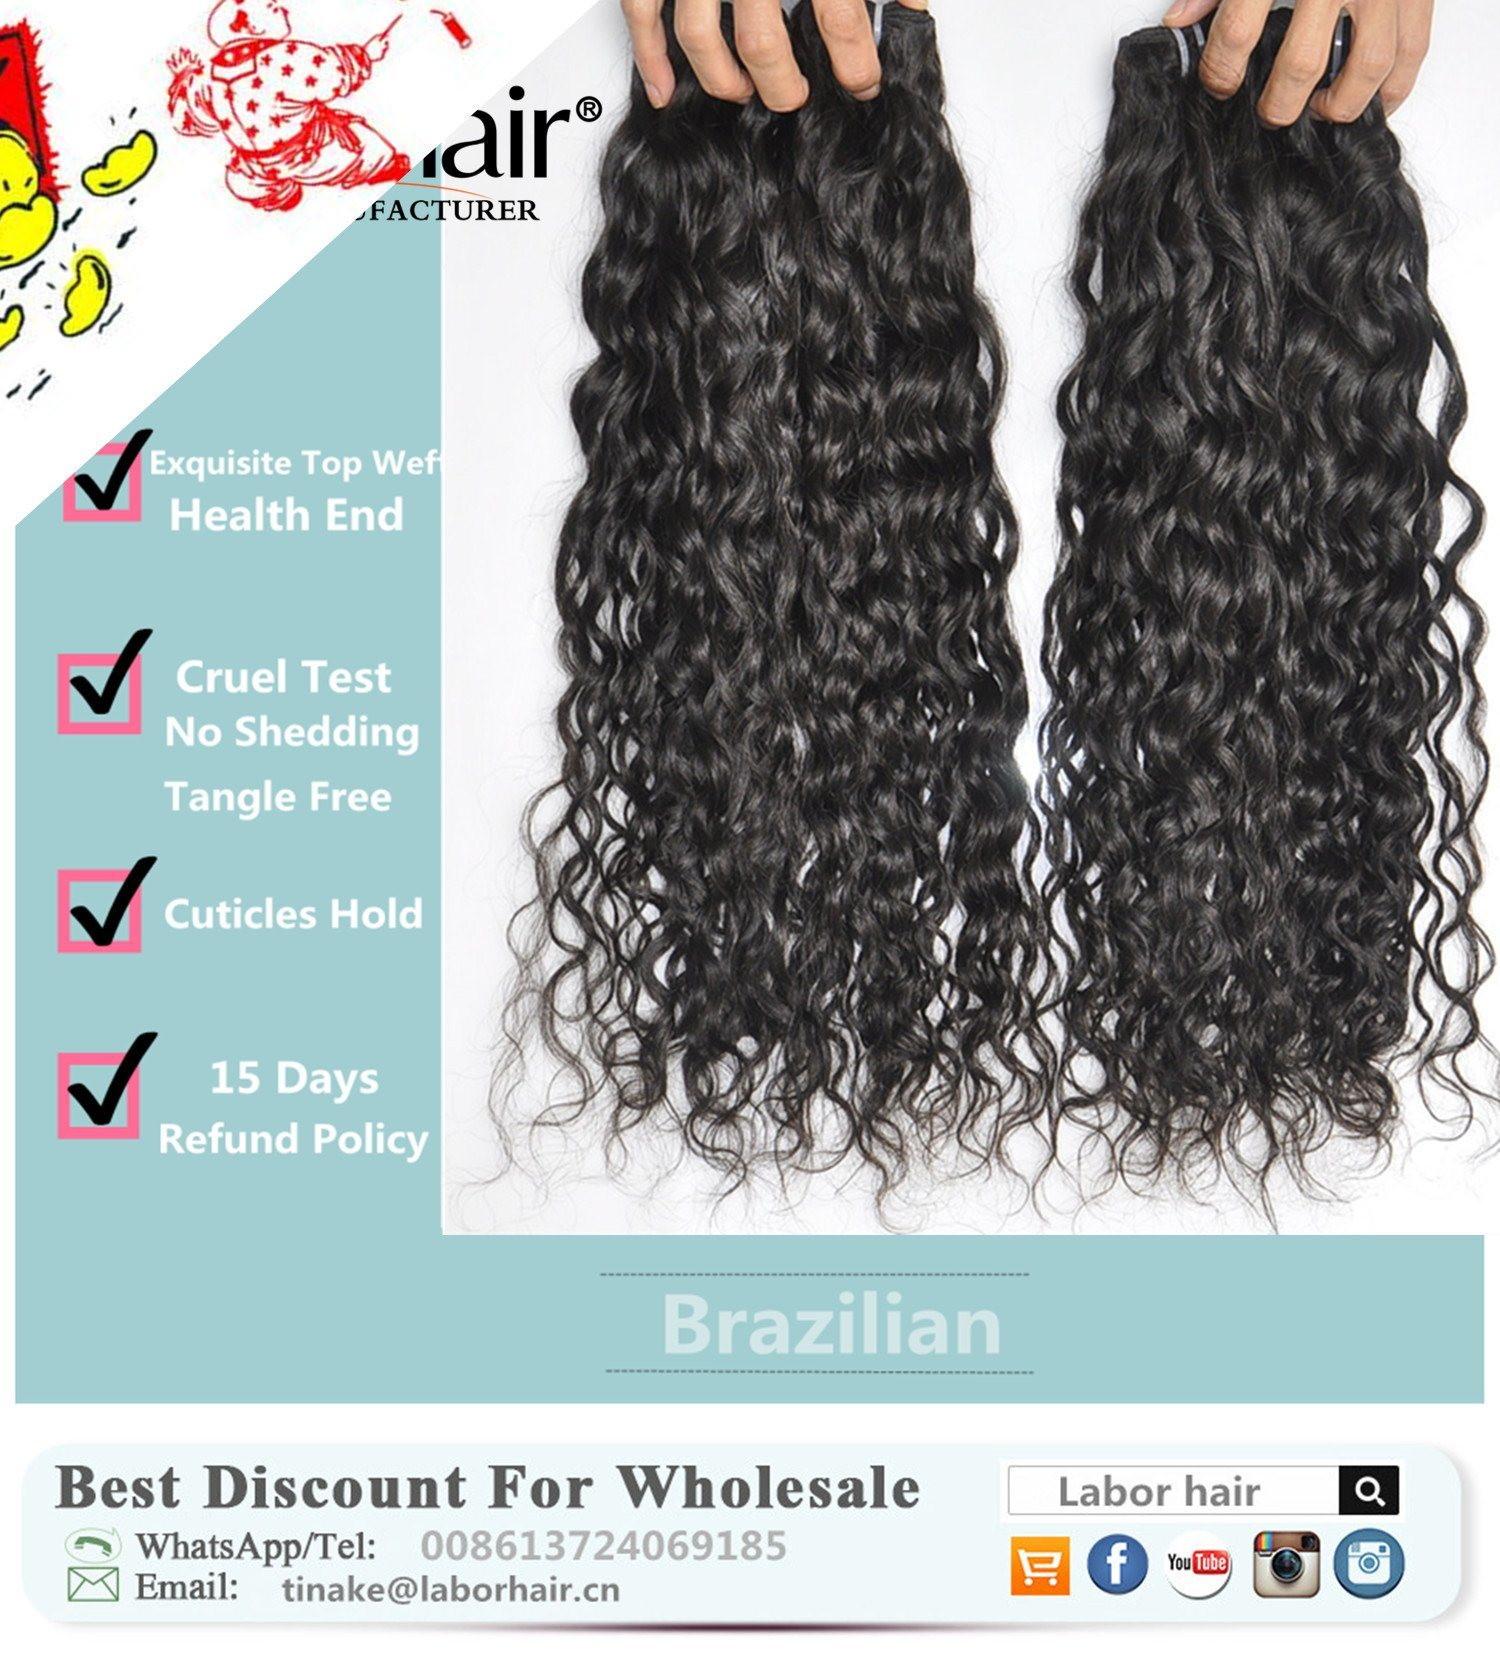 Unprocessed French Wave Hair Extension 105g (+/-2g) /Bundle Natural Brazilian Virgin Hair Italy Wave 100% Human Hair Weaves Grade 9A